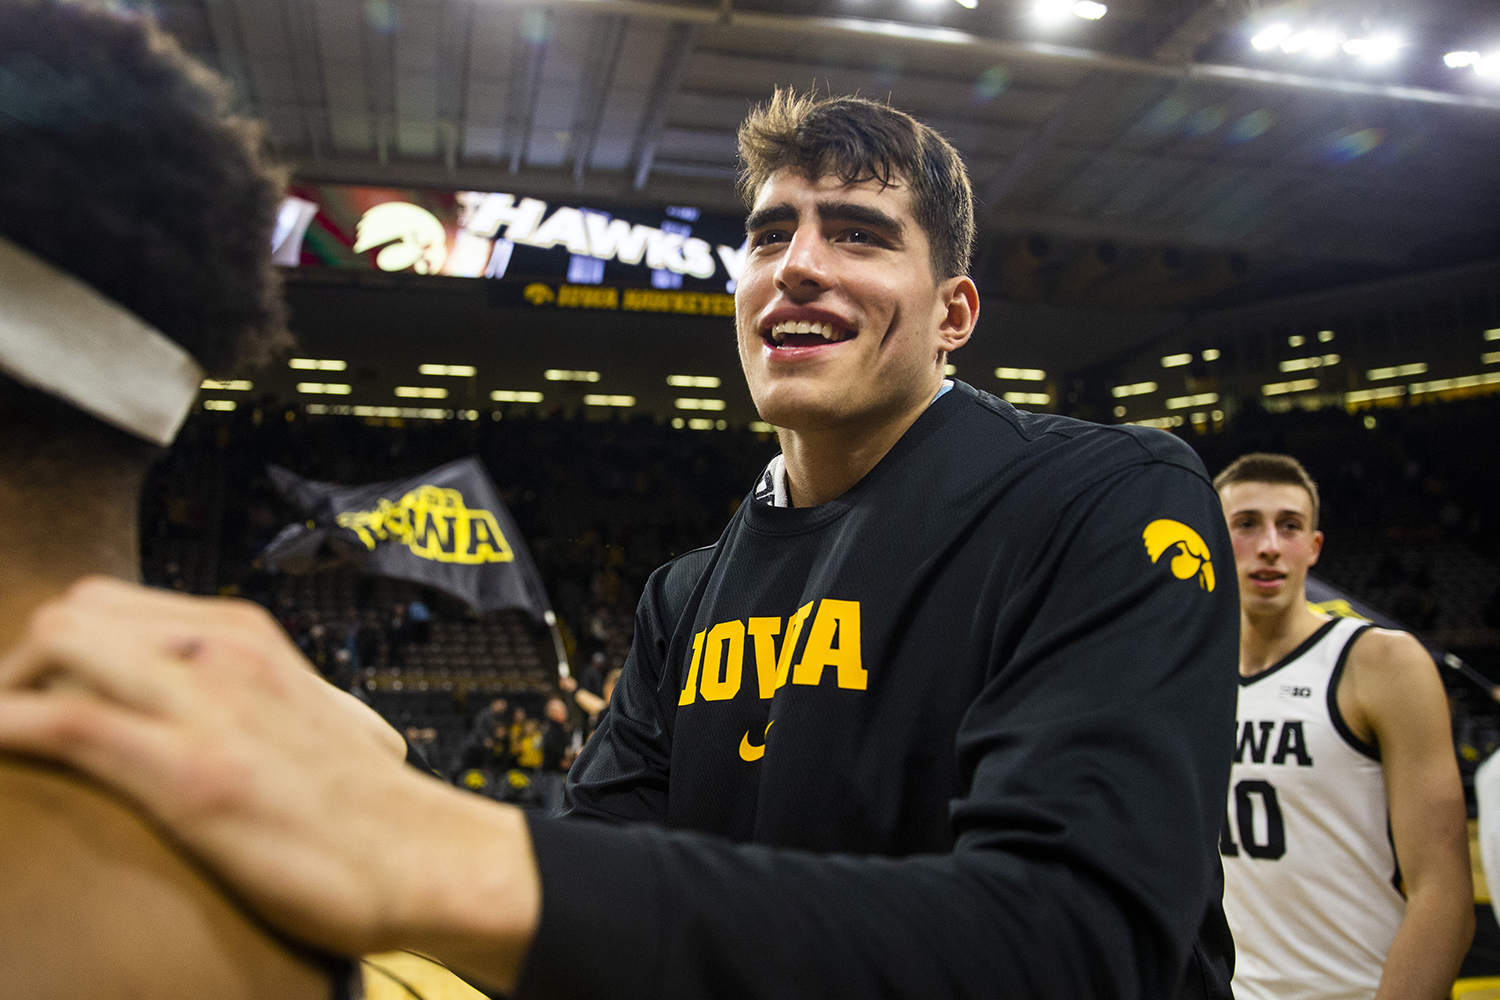 Iowa center Luka Garza celebrates the win after the   men's basketball game against Cal Poly at Carver-Hawkeye Arena on Sunday, November 24, 2019. The Hawkeyes defeated the Mustangs 85-59.